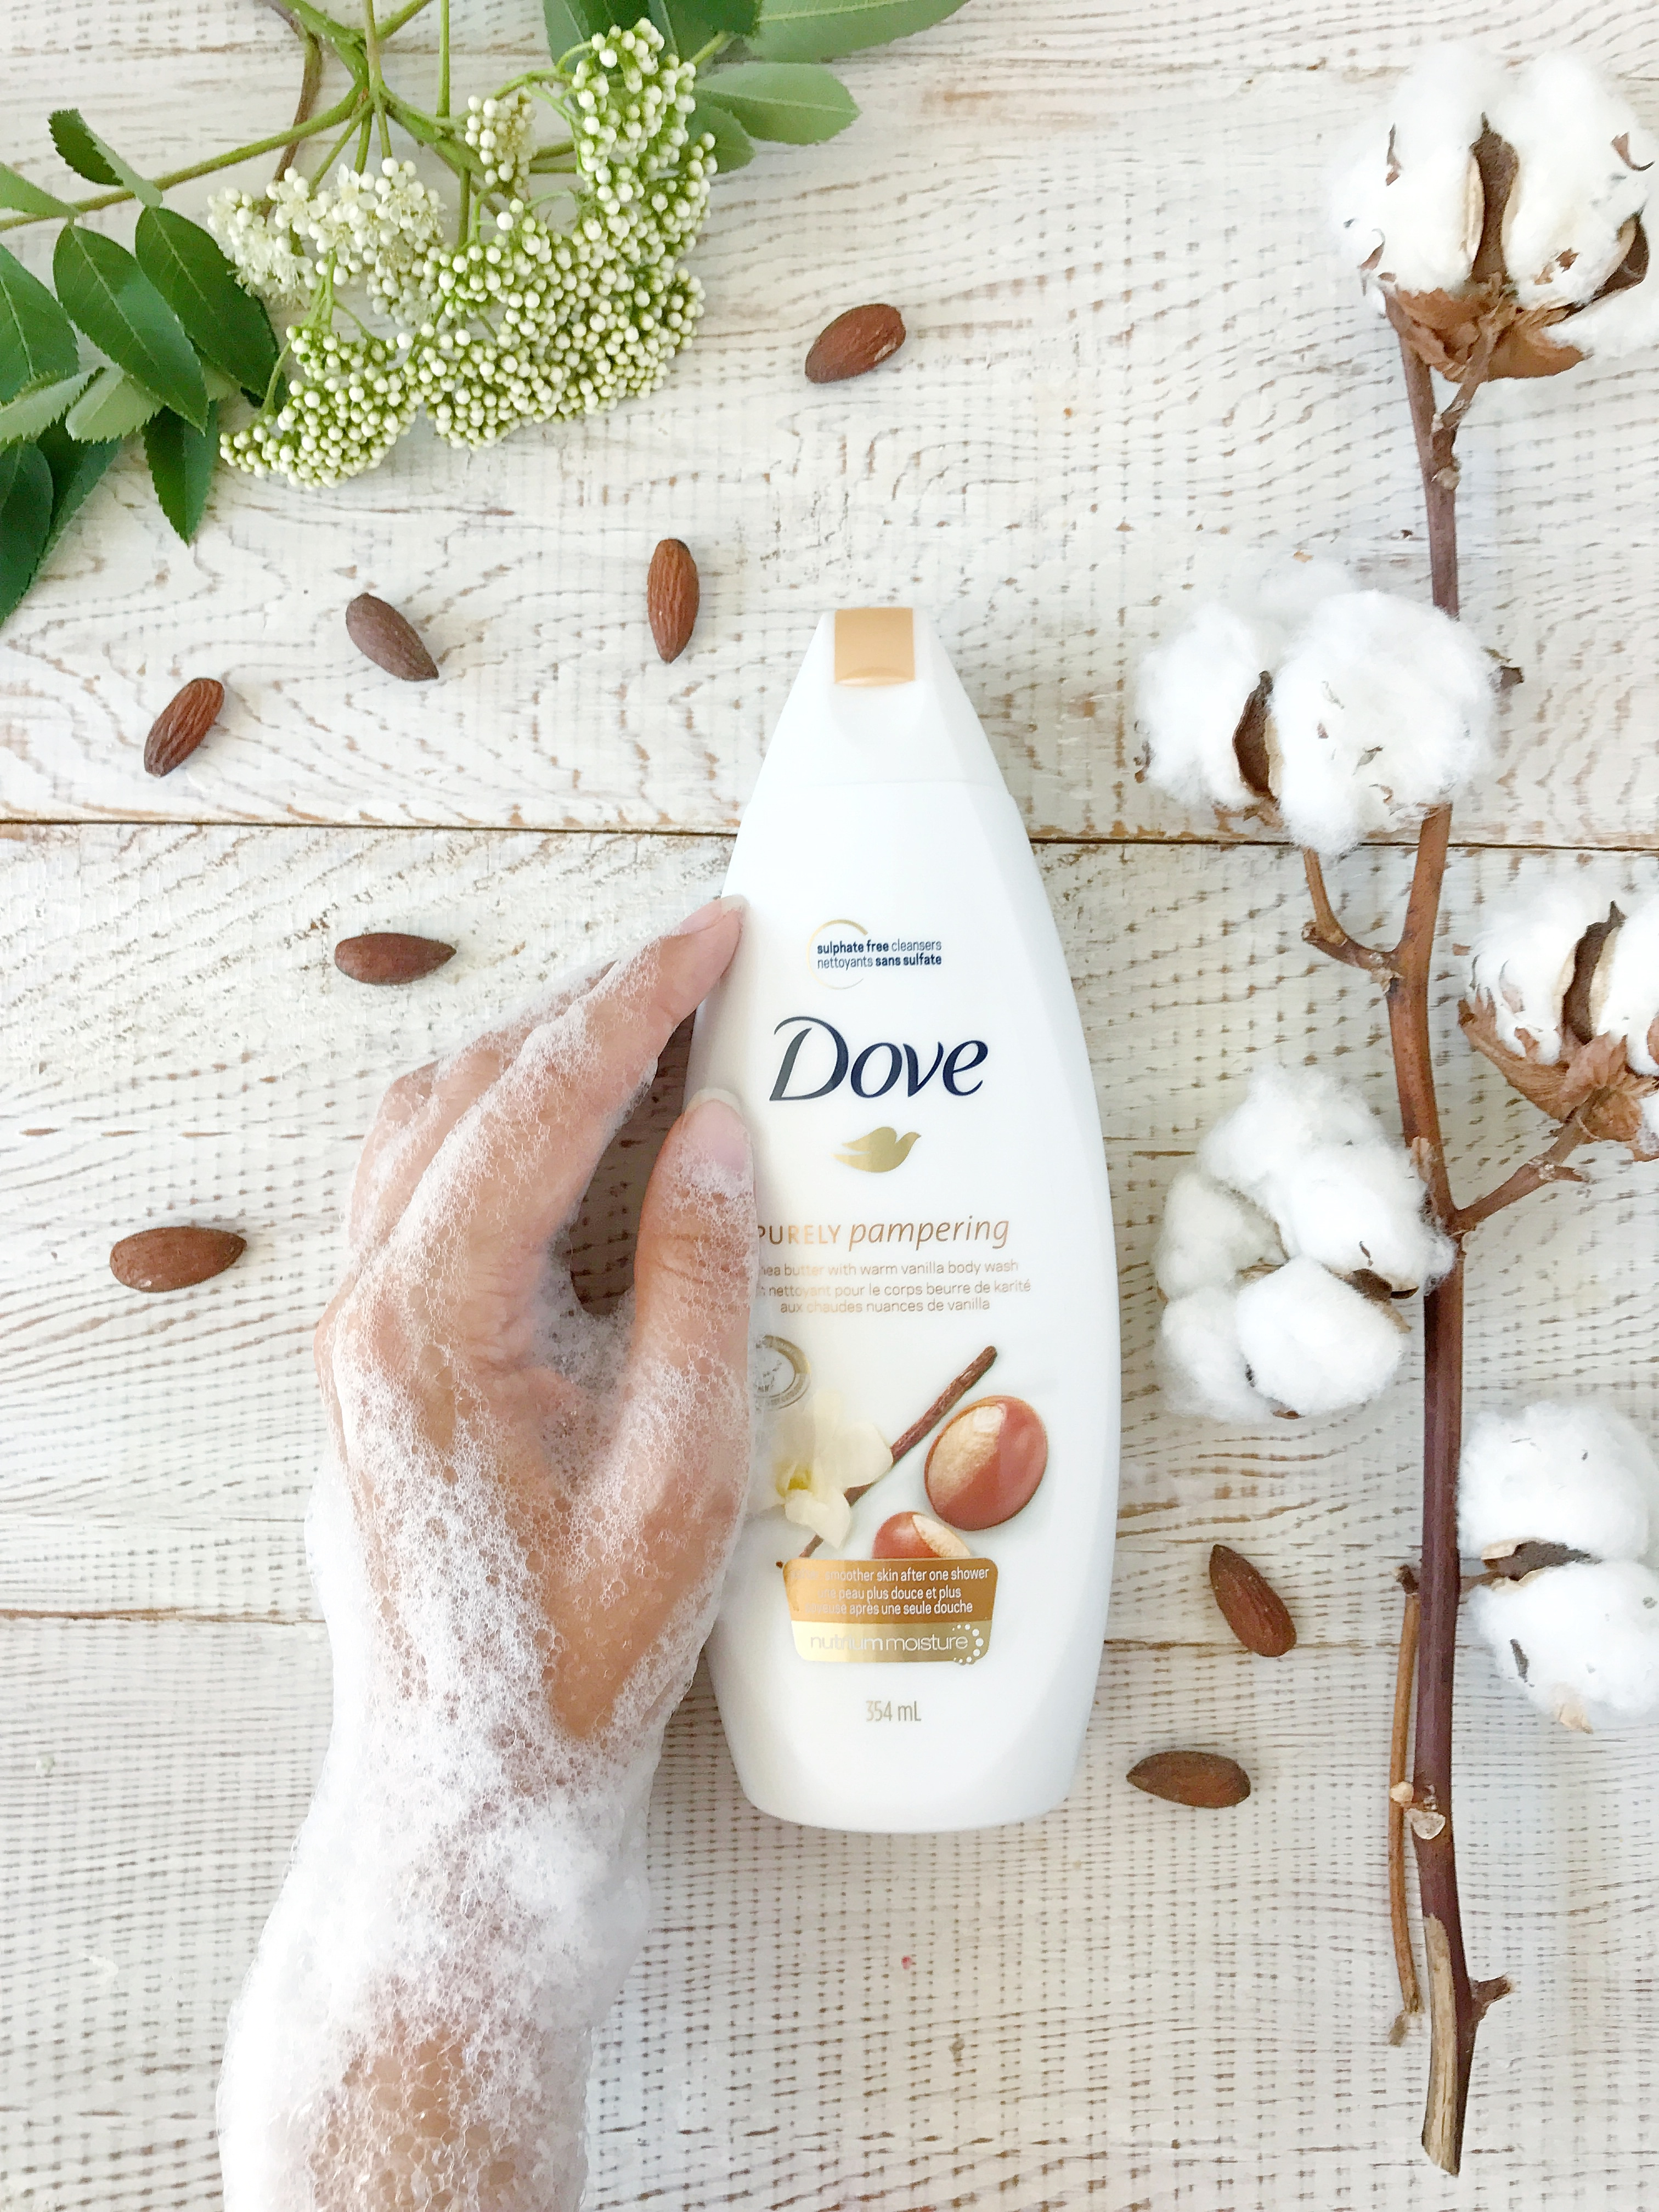 Dove Purely Pampering Shea Butter With Warm Vanilla Body Wash Reviews In Body Wash Shower Gel Chickadvisor